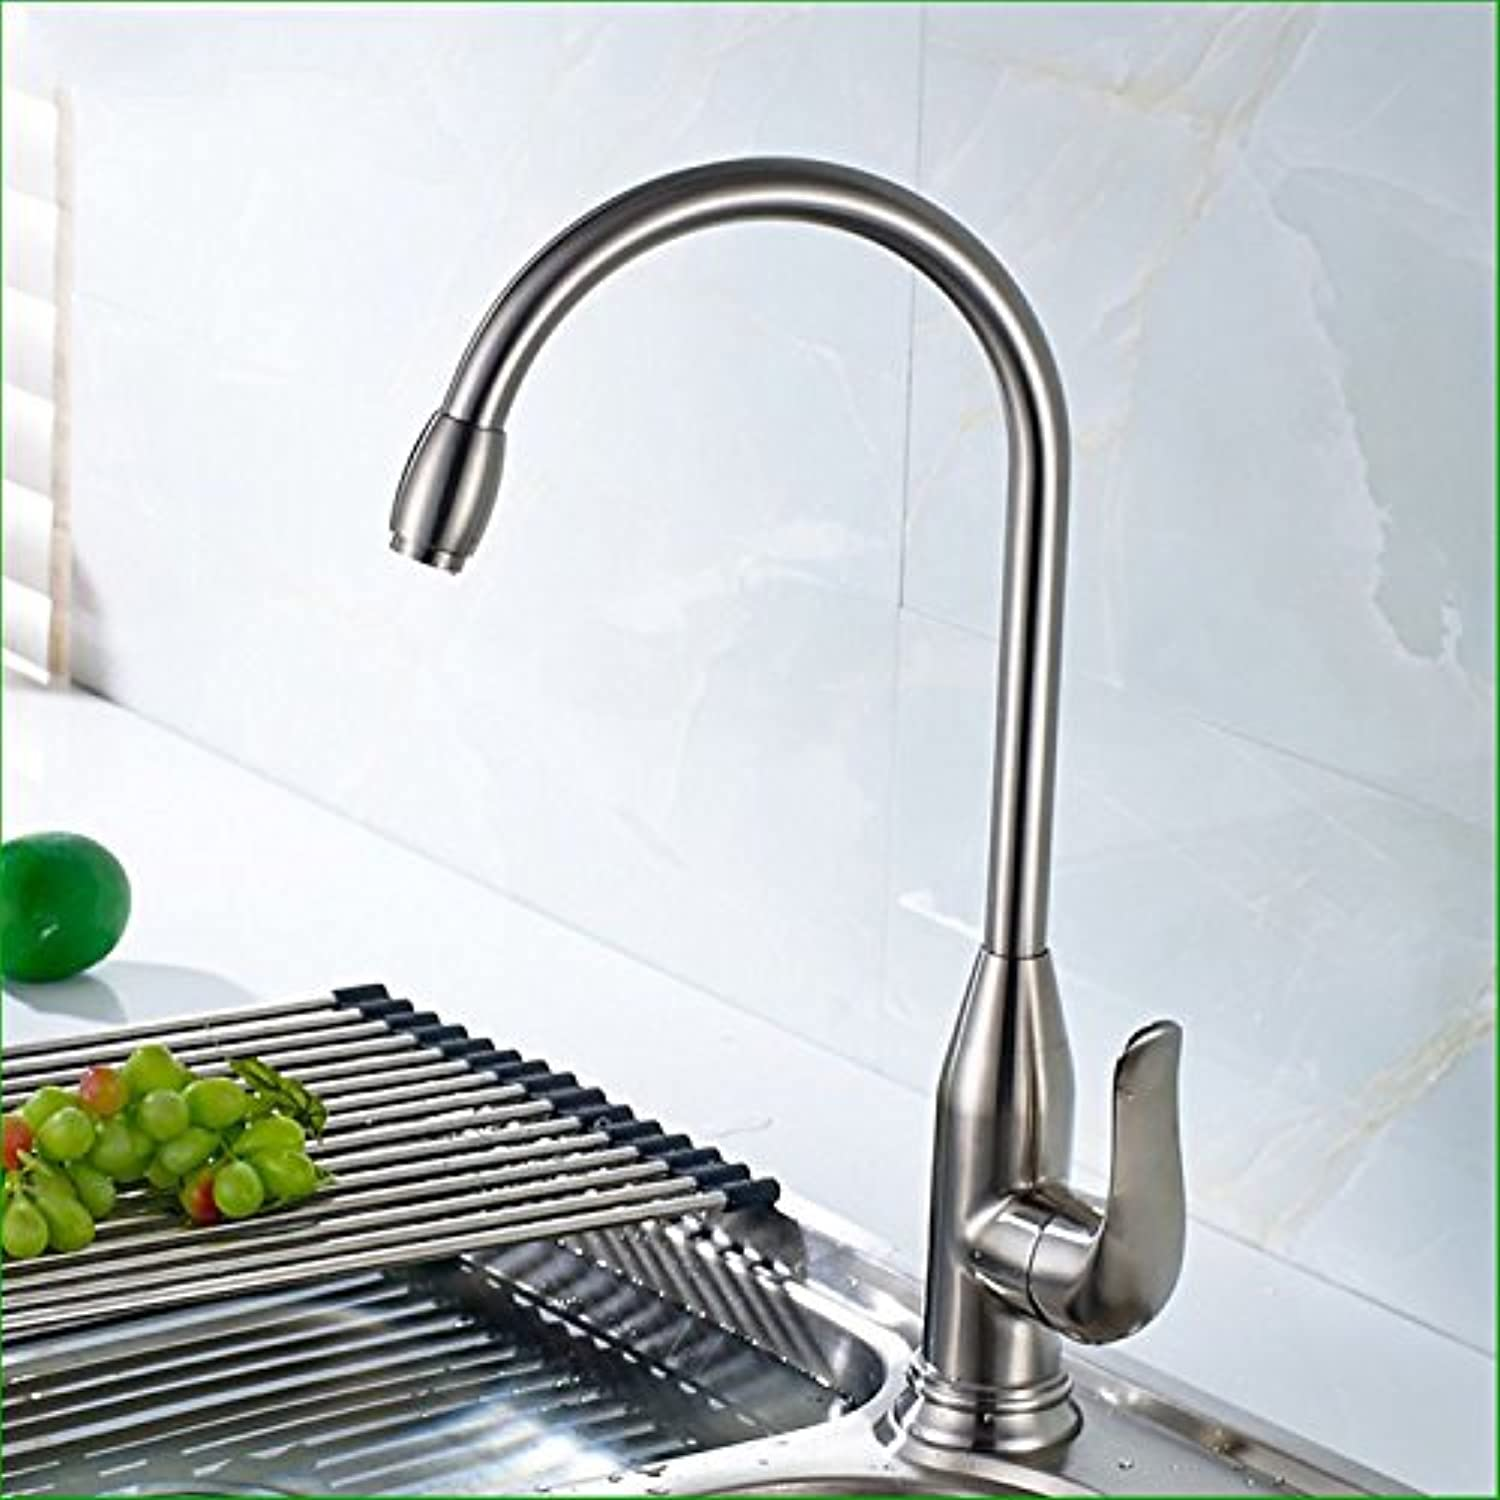 Commercial Single Lever Pull Down Kitchen Sink Faucet Brass Constructed Polished 304 Stainless Steel Single Handle Single Hole Hot and Cold Water Faucet redatable Kitchen Sink Sink Faucet